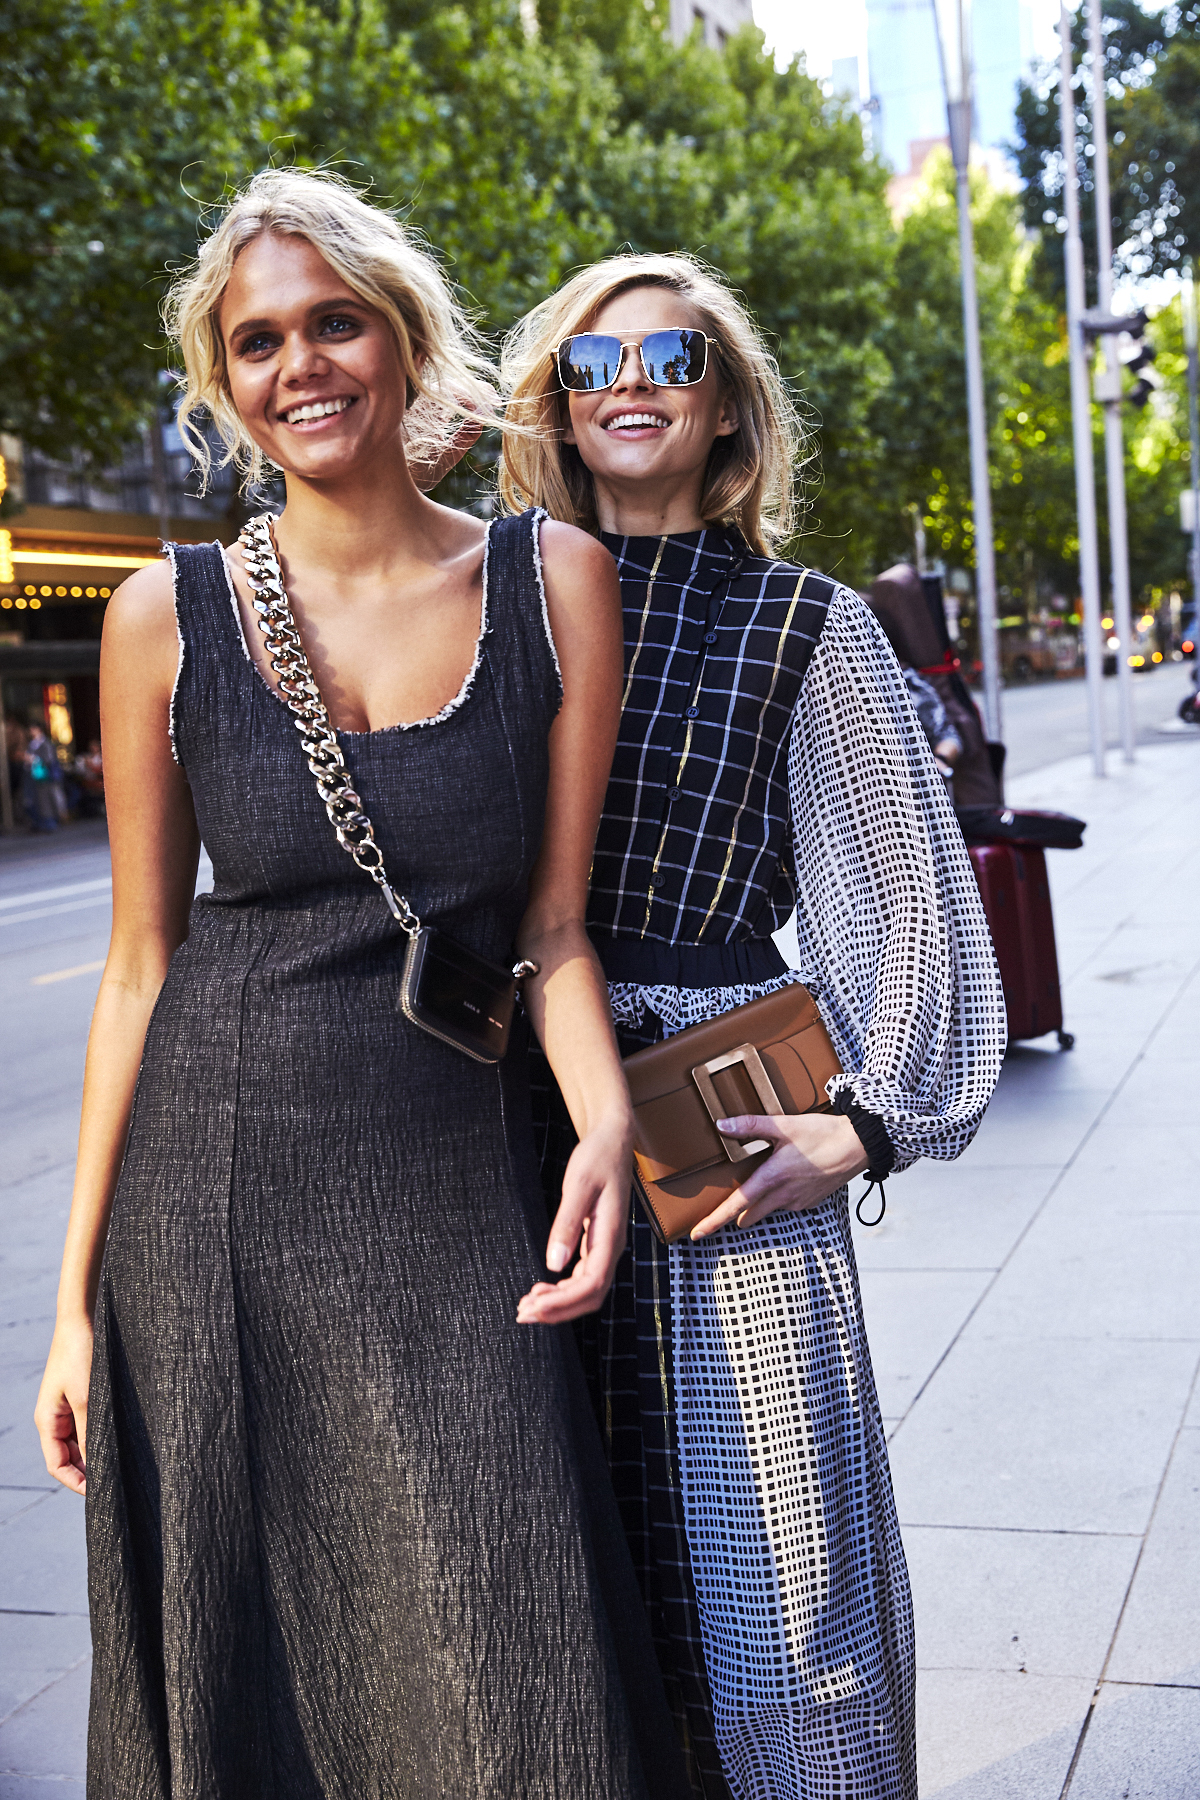 Shooting David Jones Ambassadors in the middle of Melbourne CBD